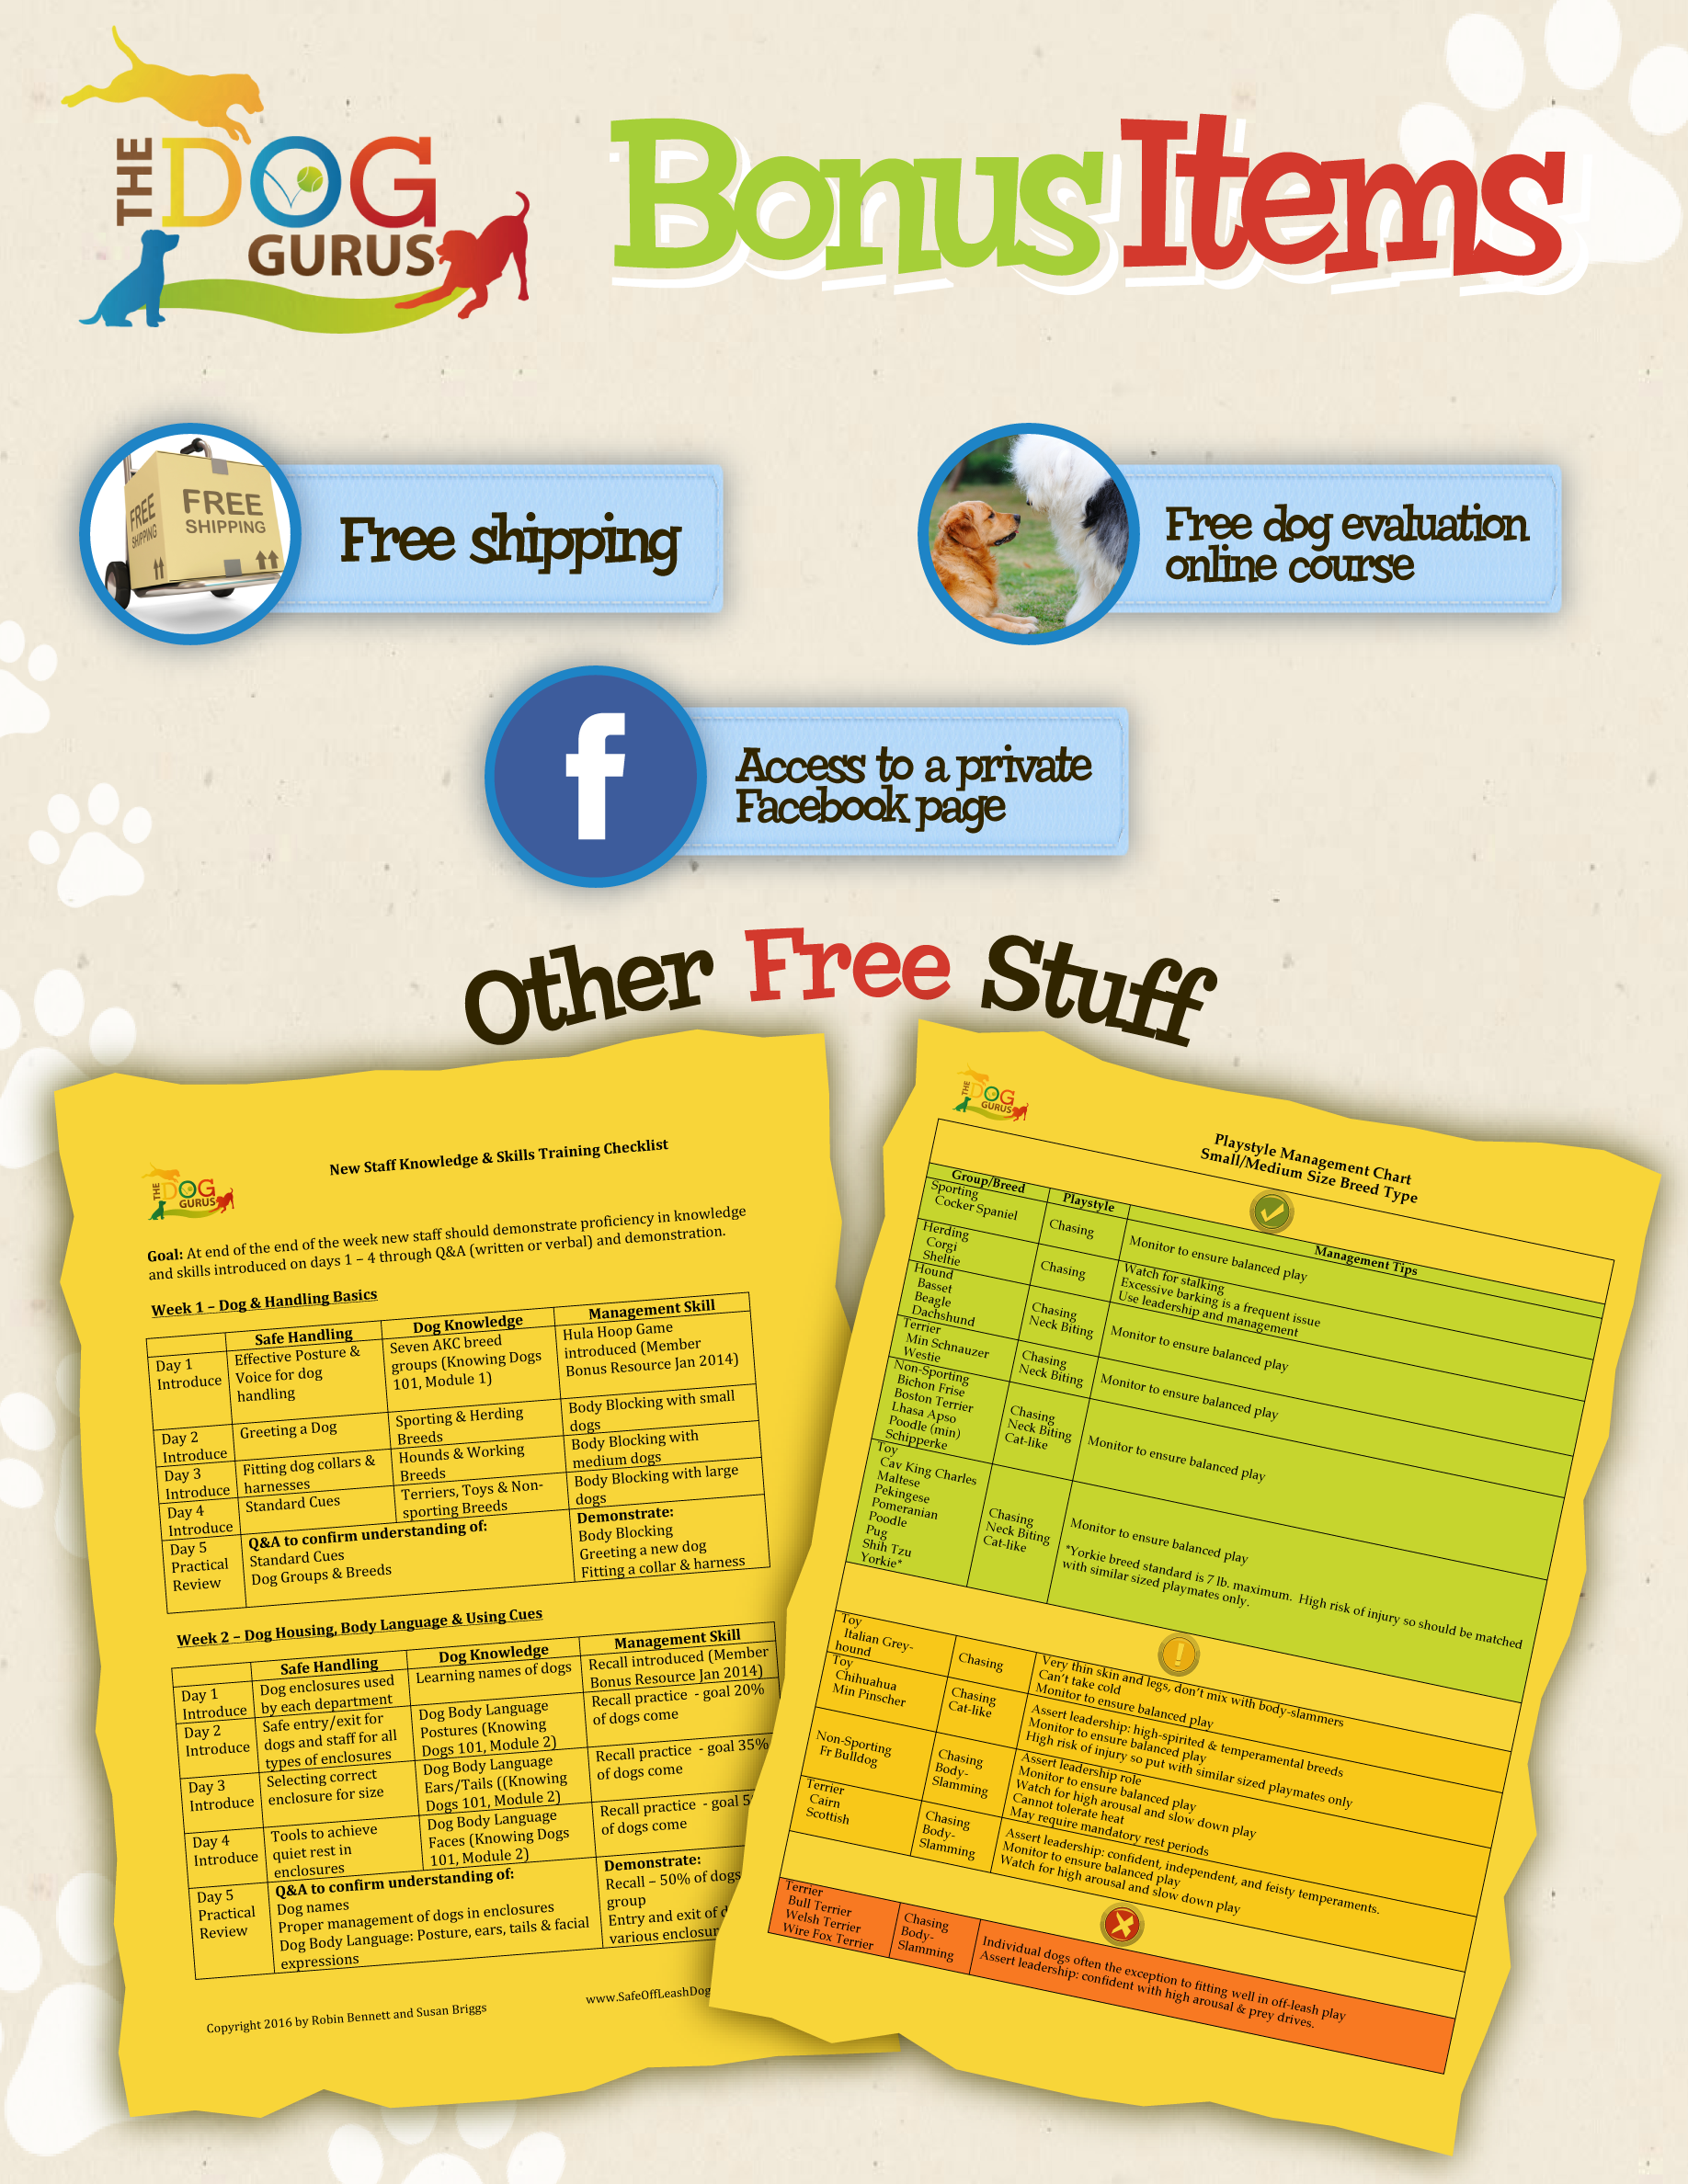 Special Bonus Items Graphic for Knowing Dogs webinar